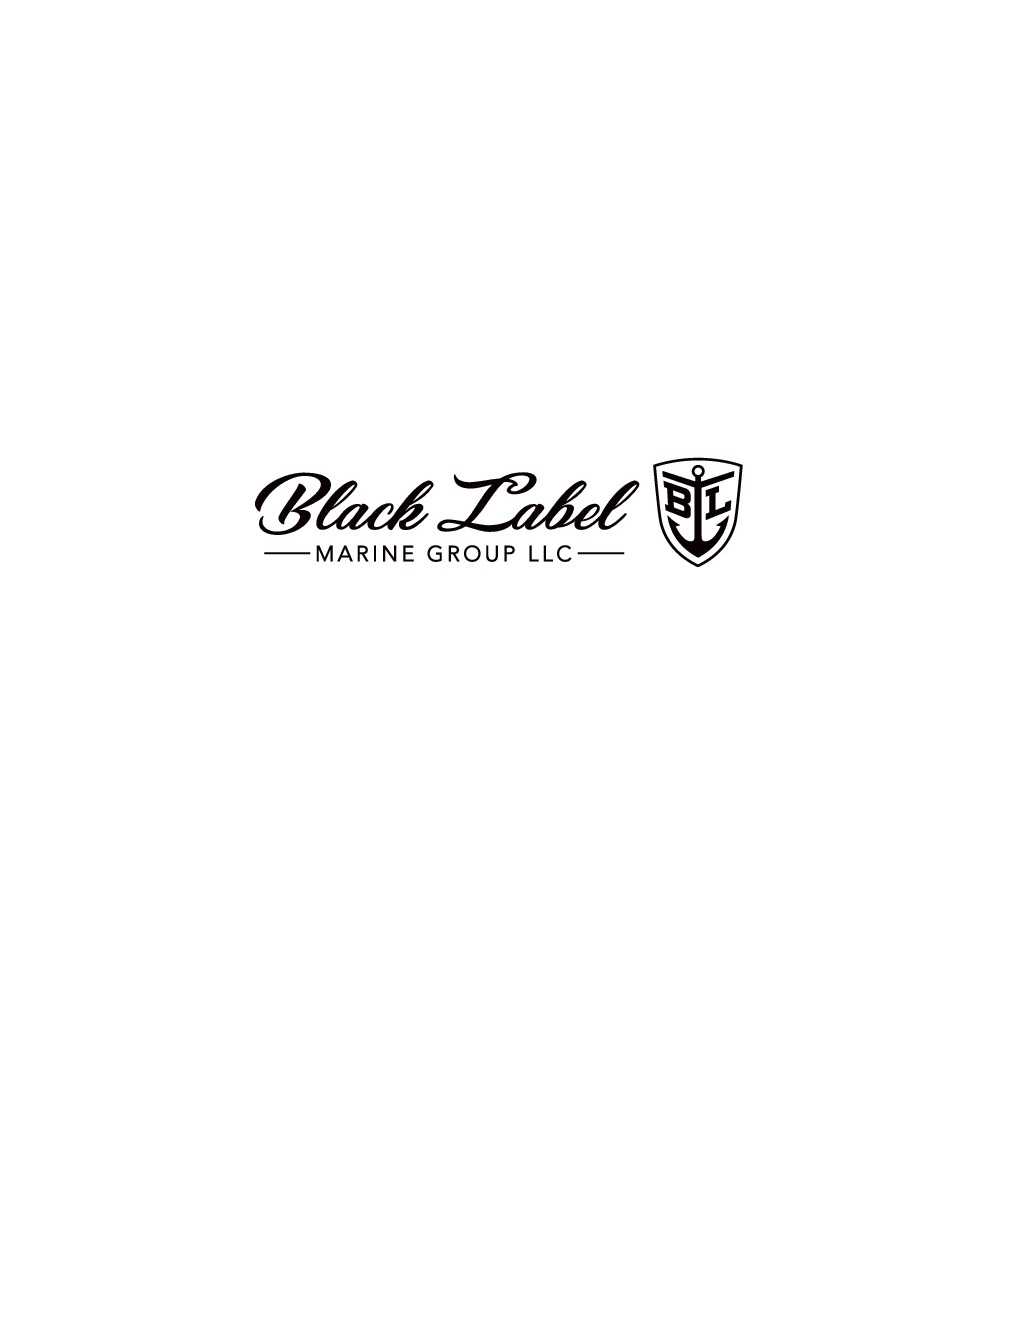 Your Logo + Our Black Label Boats = Success once we add water....